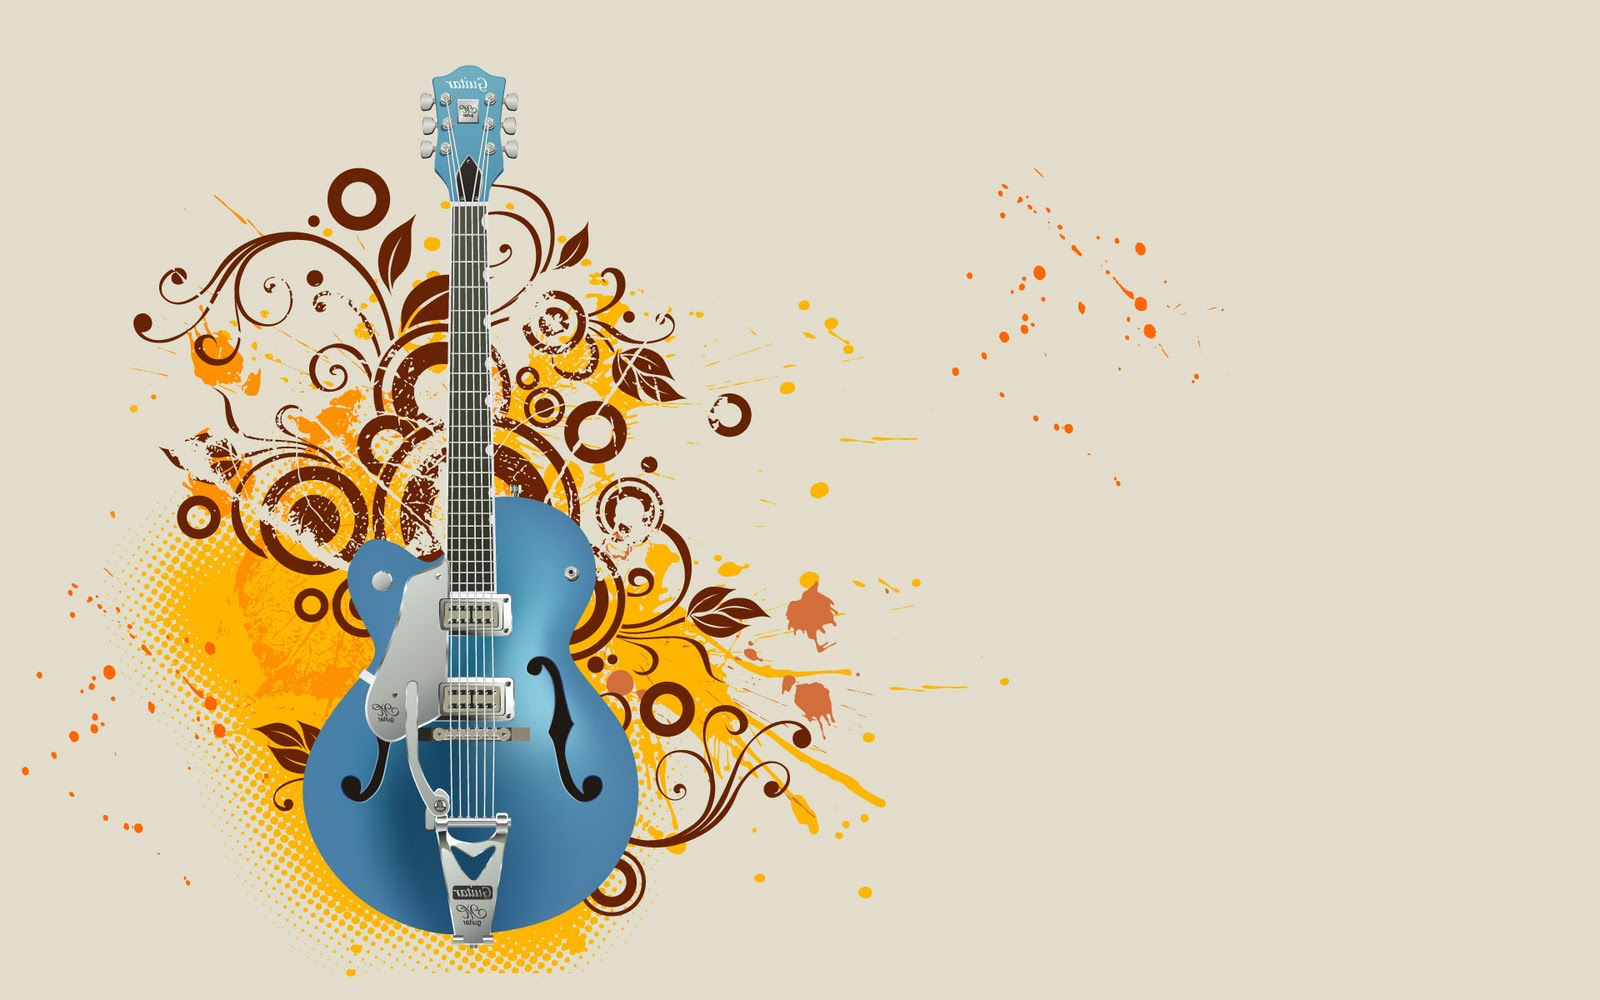 Abstract Guitar Wallpaper Hd: Calm Guitar Abstract Graphic Wallpaper